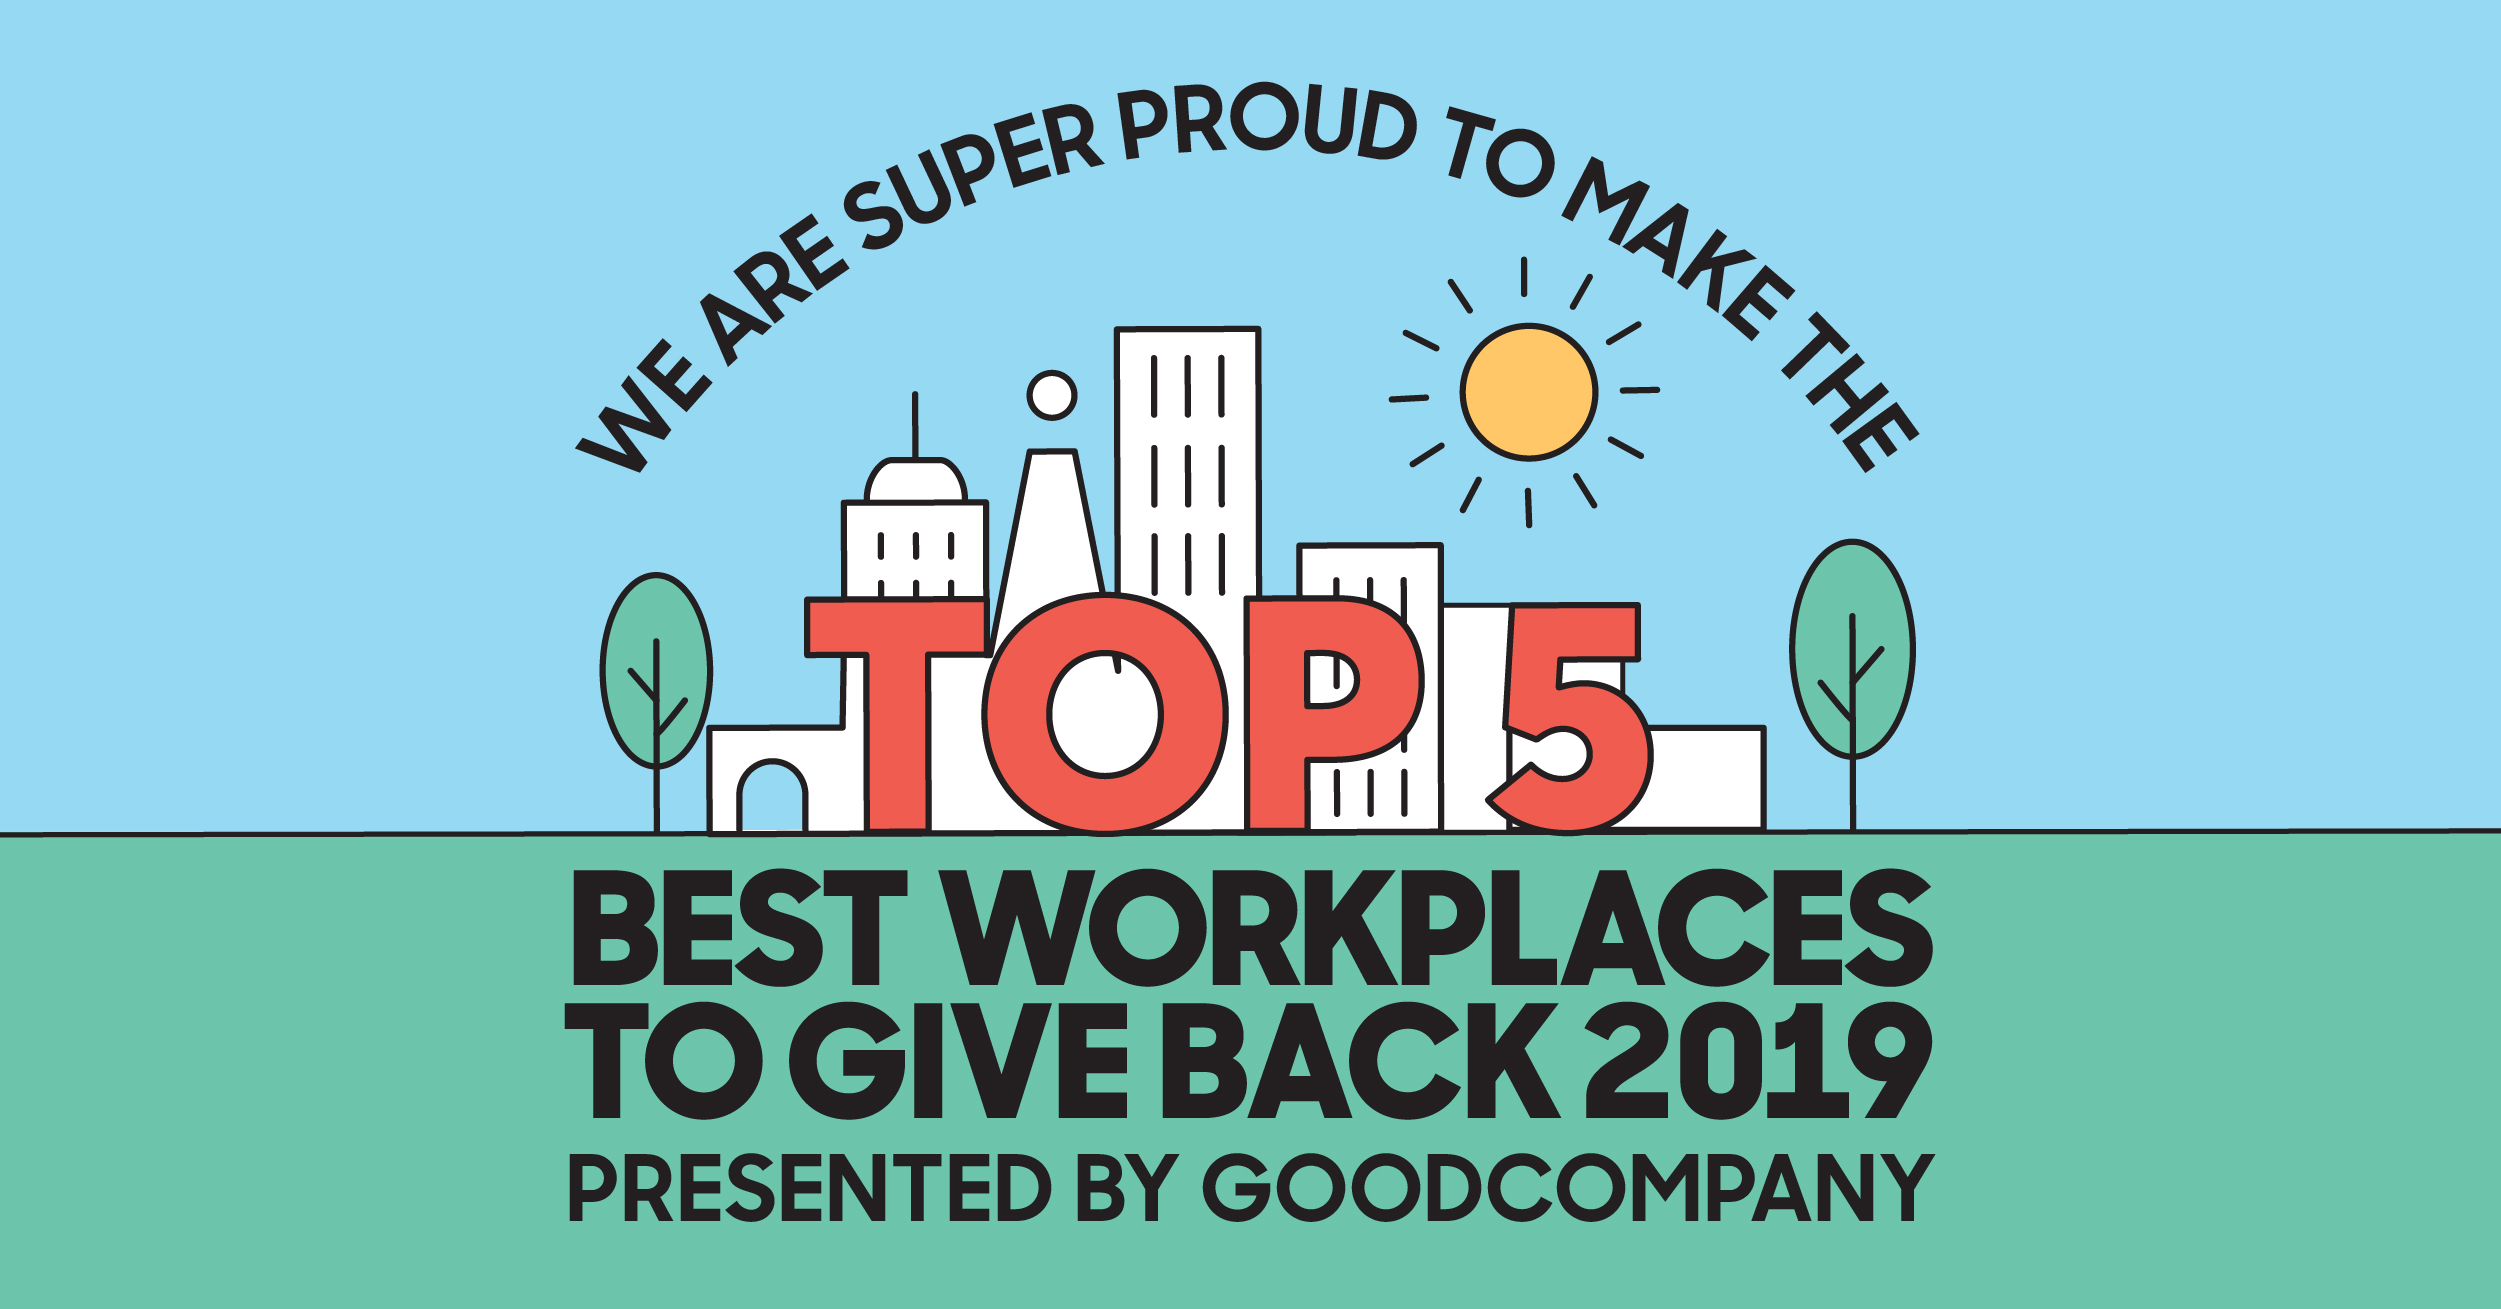 Sodexo Australia among Top Workplaces to Give Back!